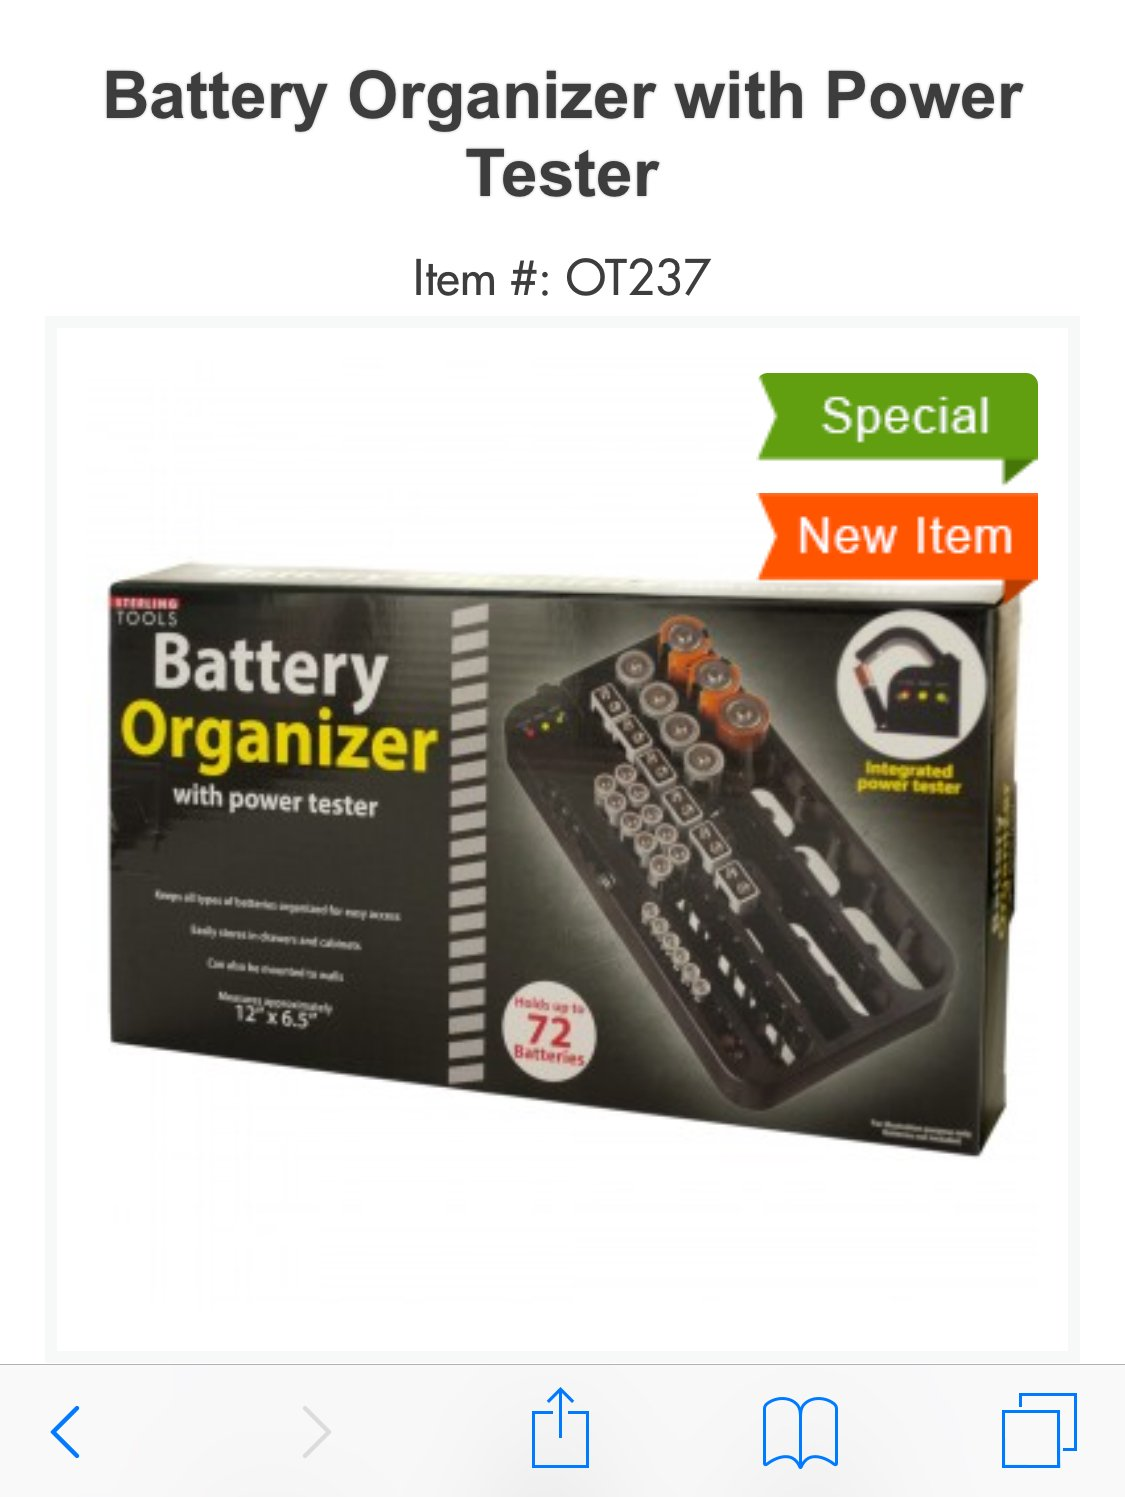 Battery Organizer with power